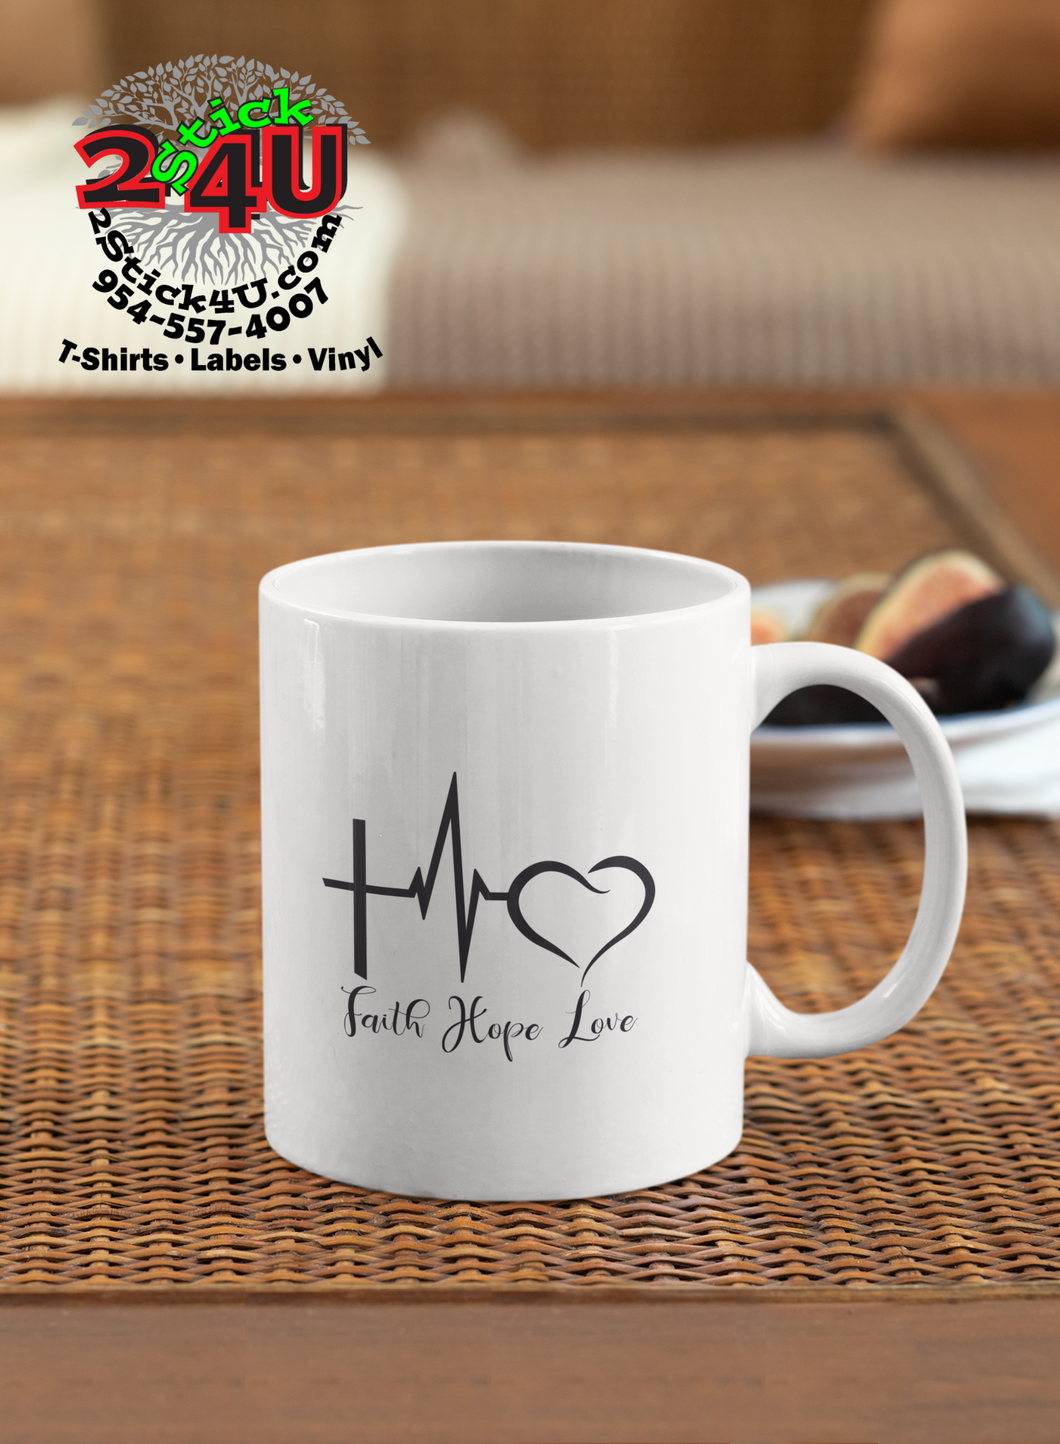 Faith*Hope*Love Coffee Mug - Home of Buy 3, Get 1 Free. Long Lasting Custom Designed Coffee Mugs for Business and Pleasure. Perfect for Christmas, Housewarming, Wedding Party gifts